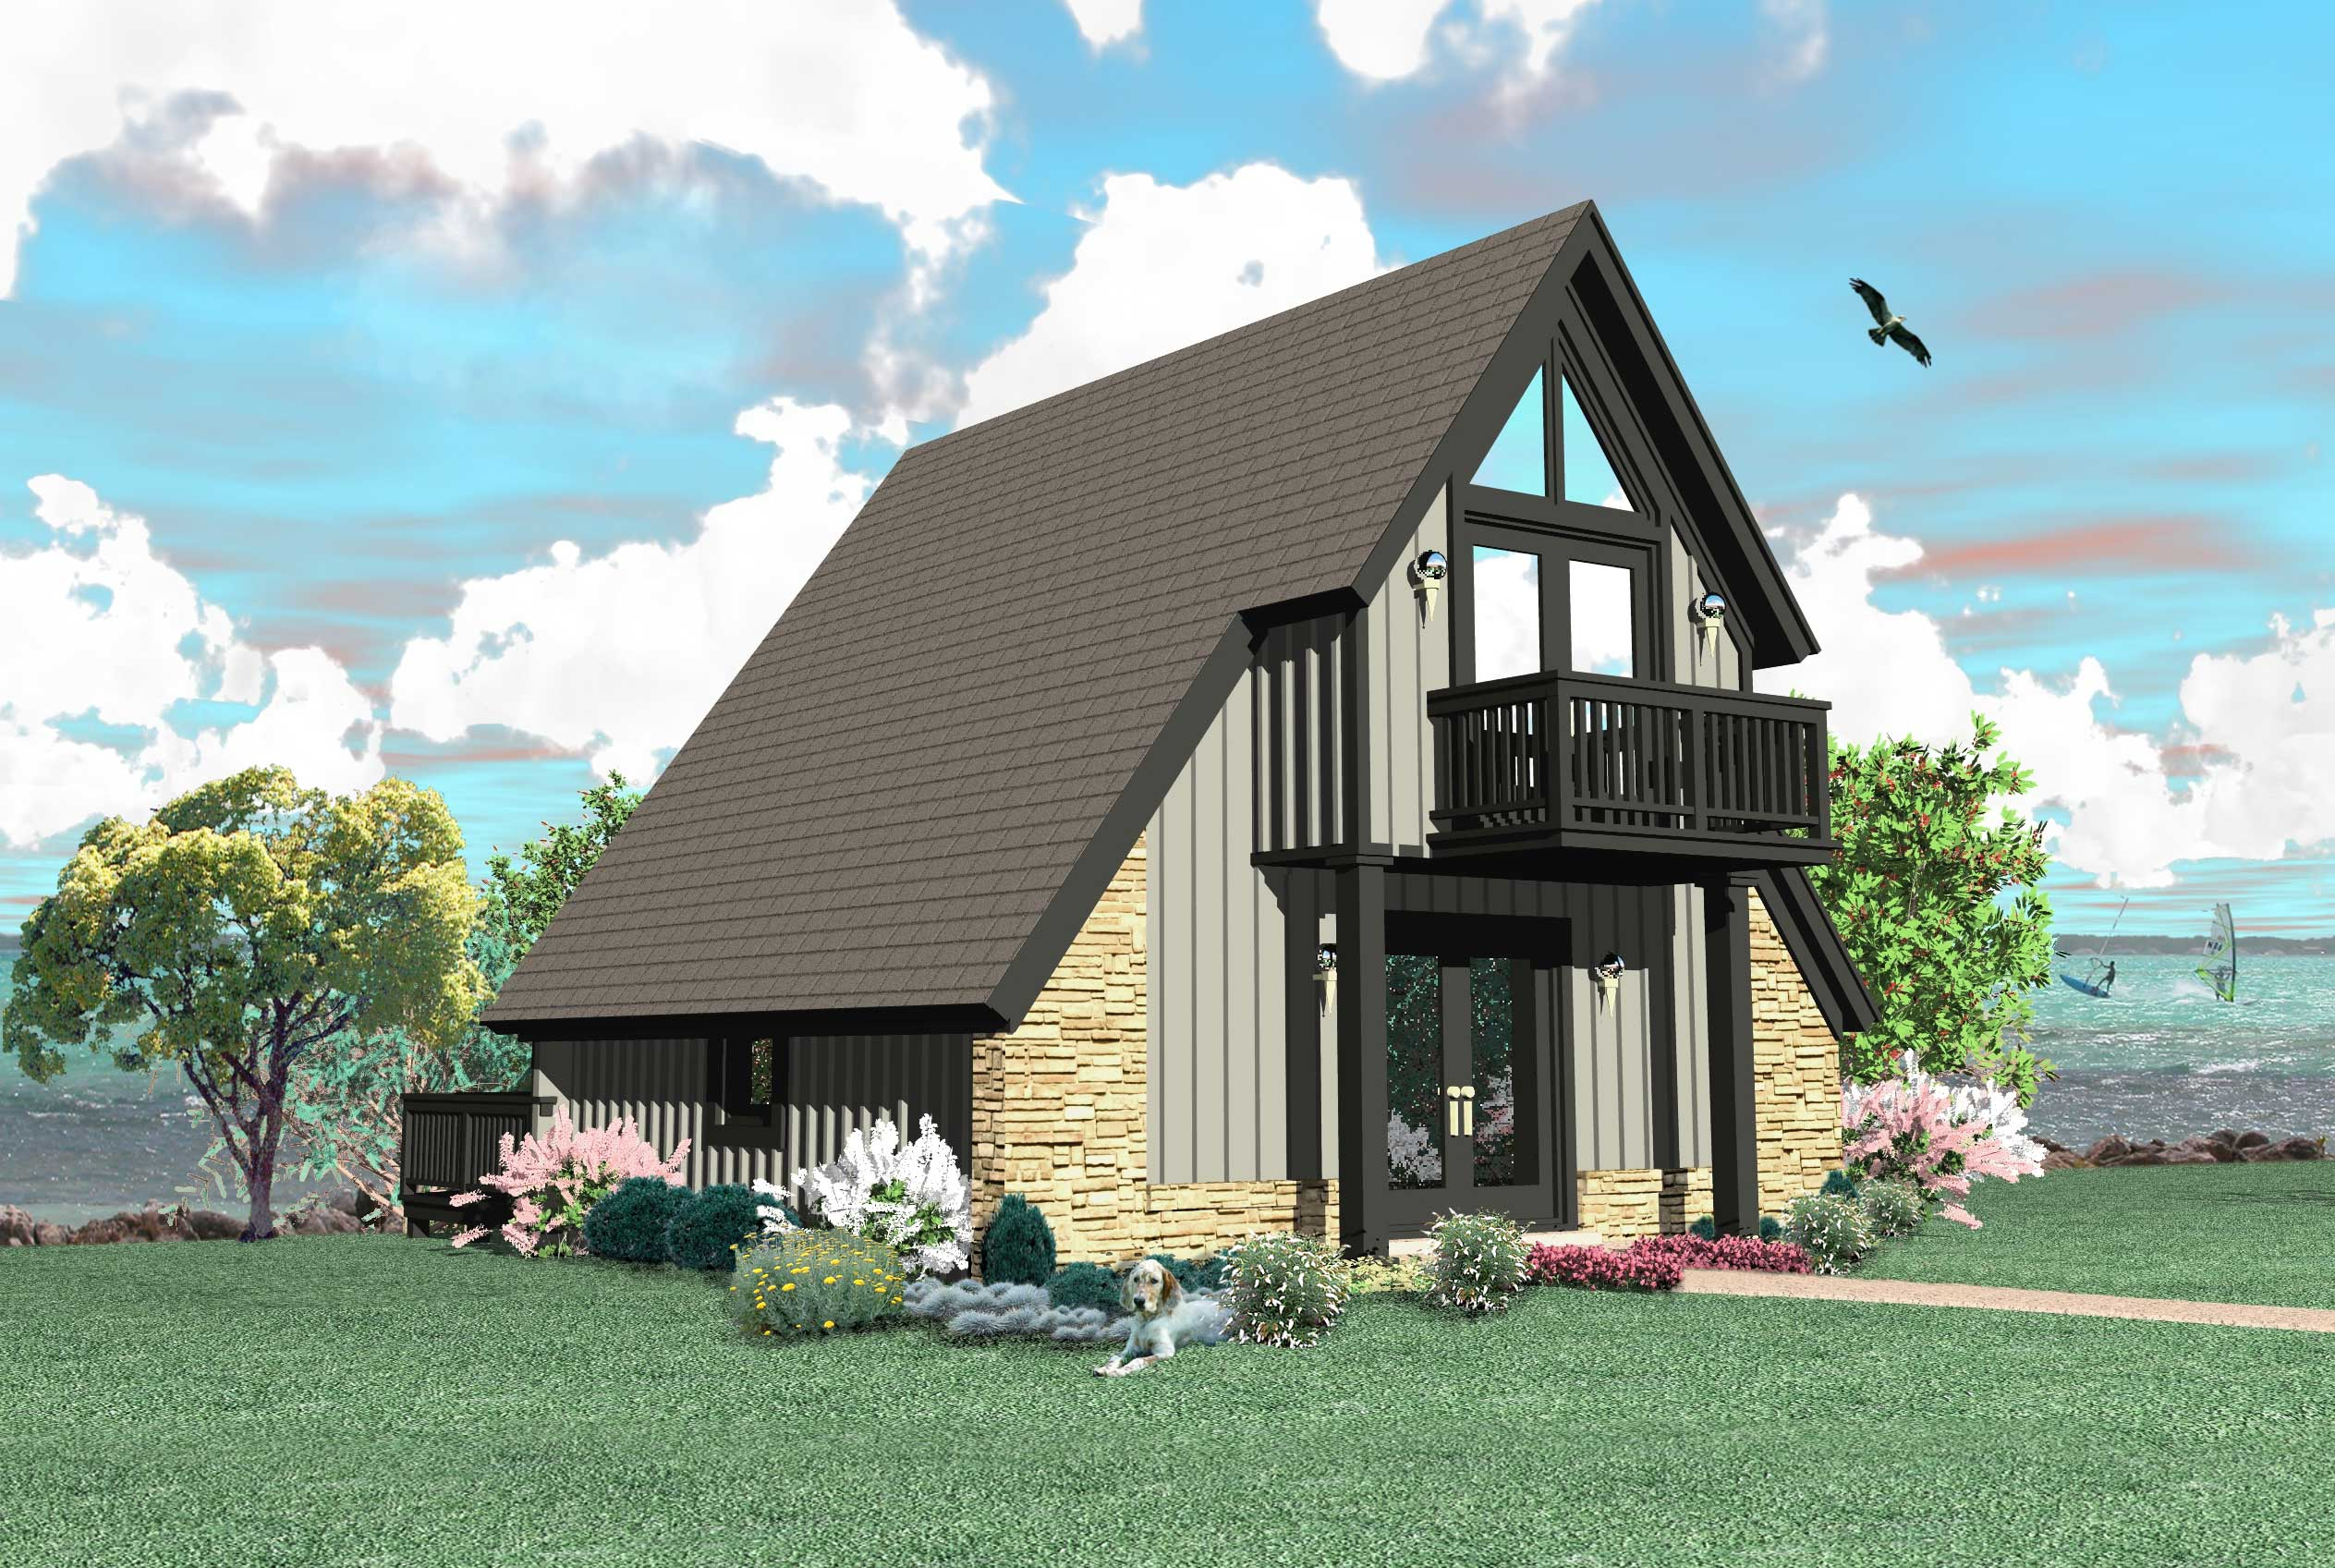 A frame house plan 0 bedrms 1 baths 734 sq ft 170 1100 for A frame house plans with attached garage